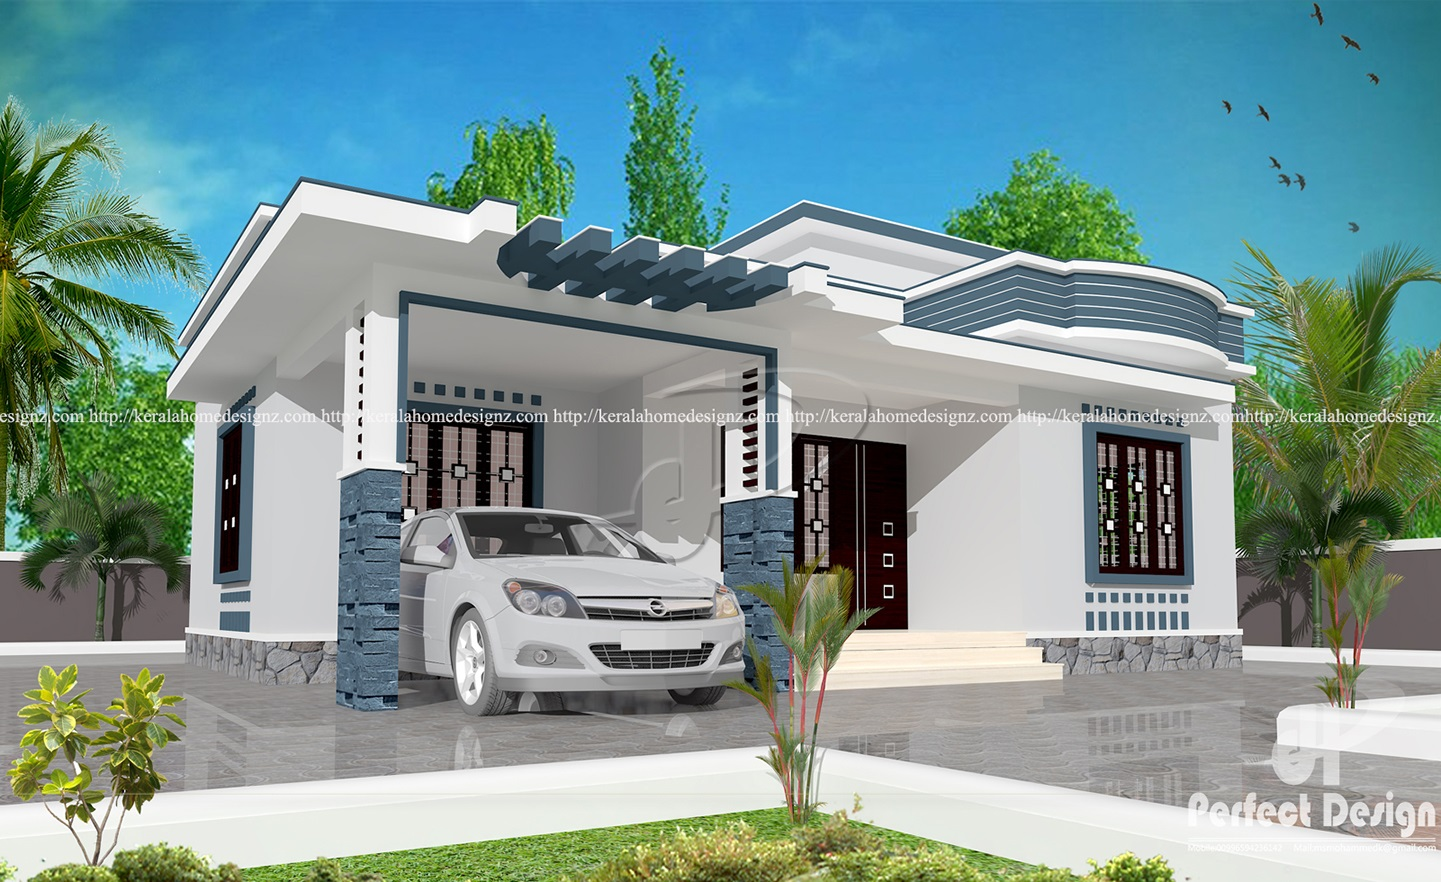 10 lakhs cost estimated modern home kerala home design for Low cost house plans with estimate